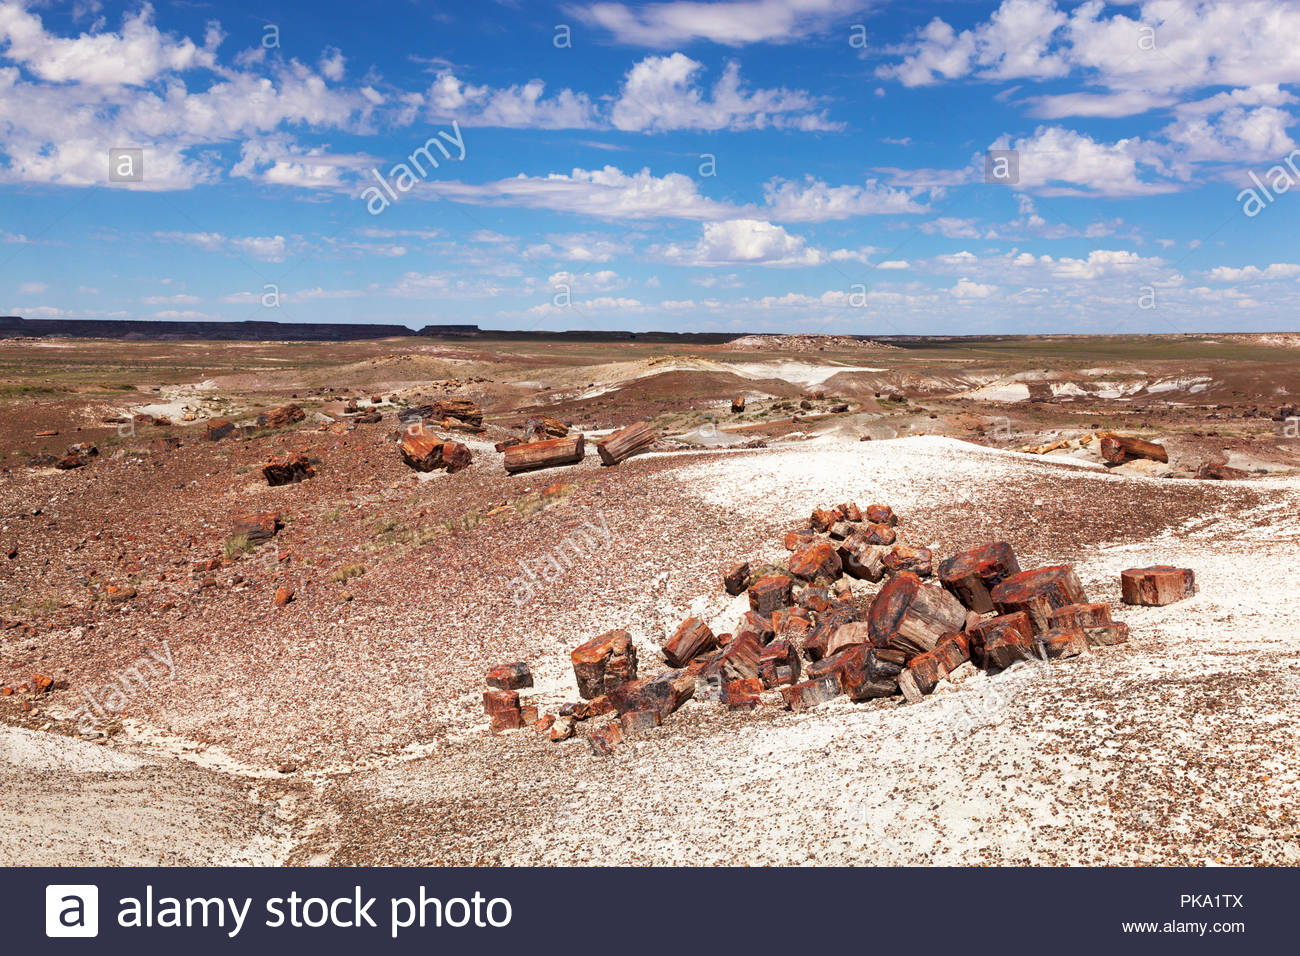 crystal-forest-petrified-logs-along-trail-petrified-forest-national-park-arizona-usa-PKA1TX.jpg